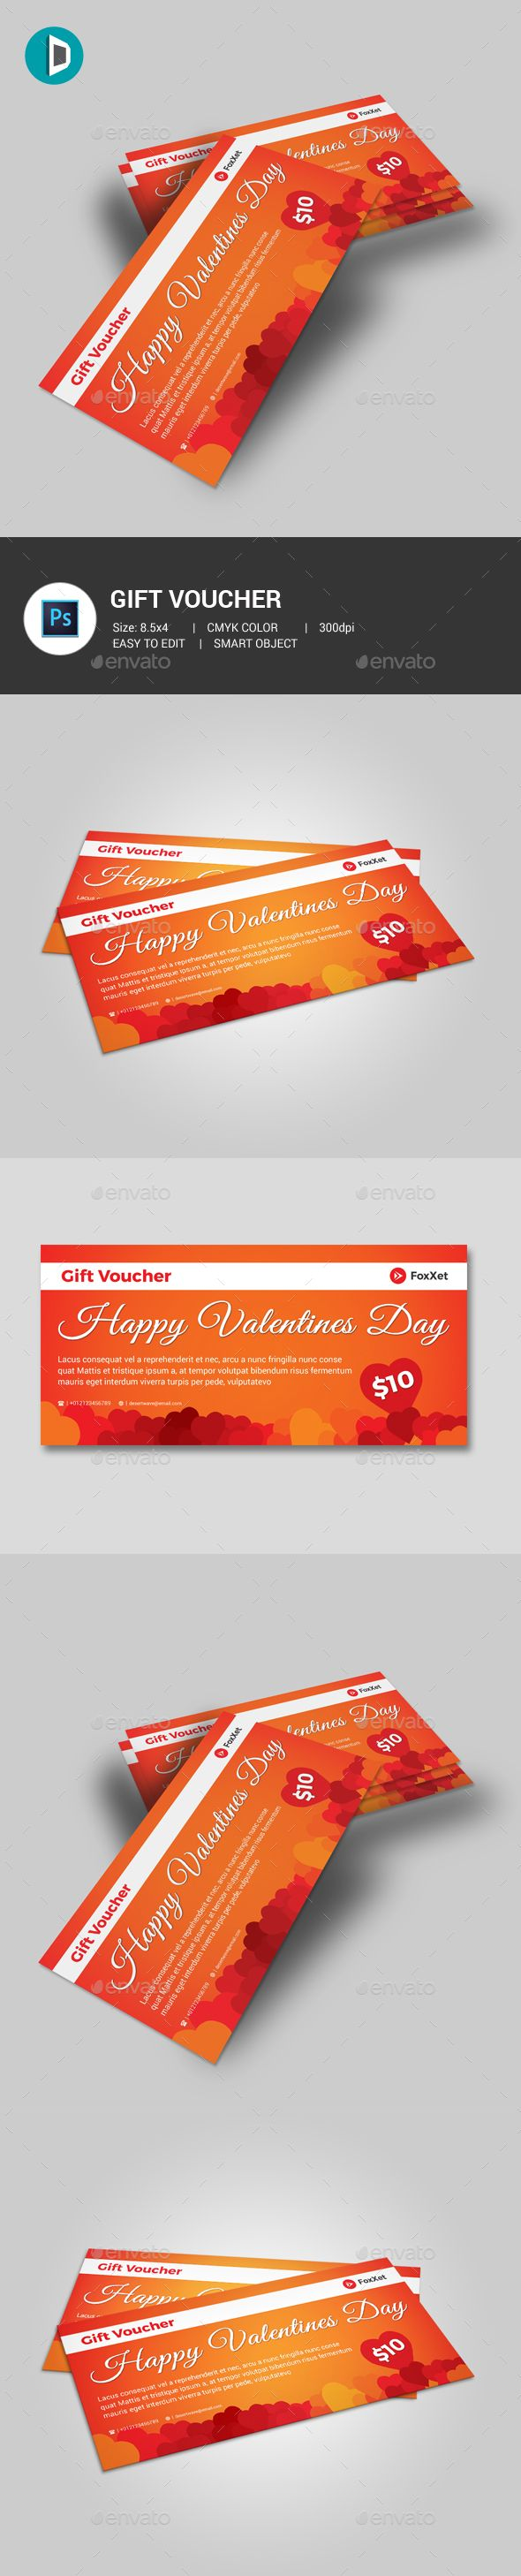 Valentine's Day Gift Voucher - Loyalty Cards Cards & Invites